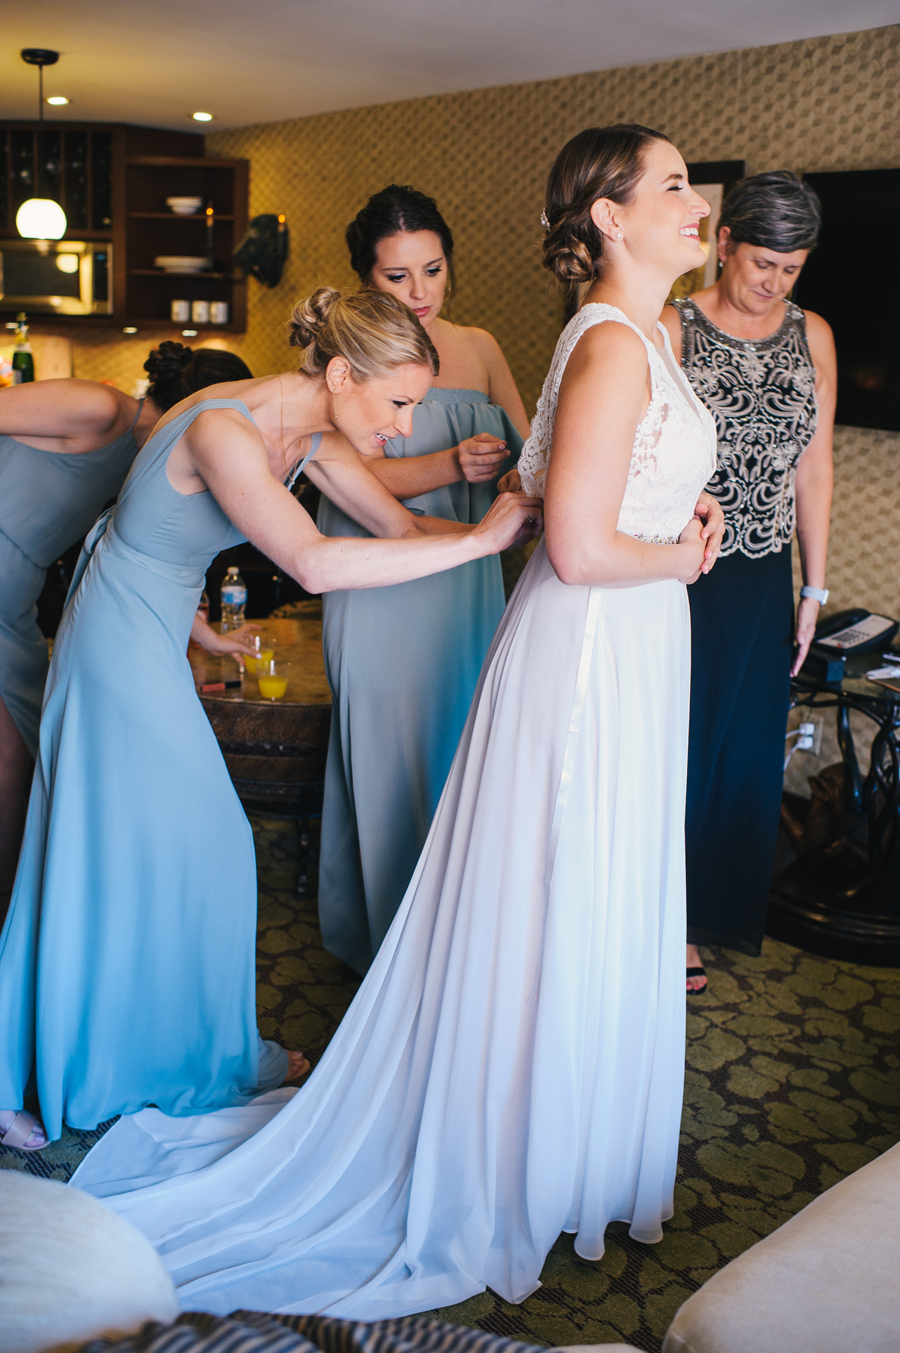 bridesmaids buttoning the back of the bride's dress